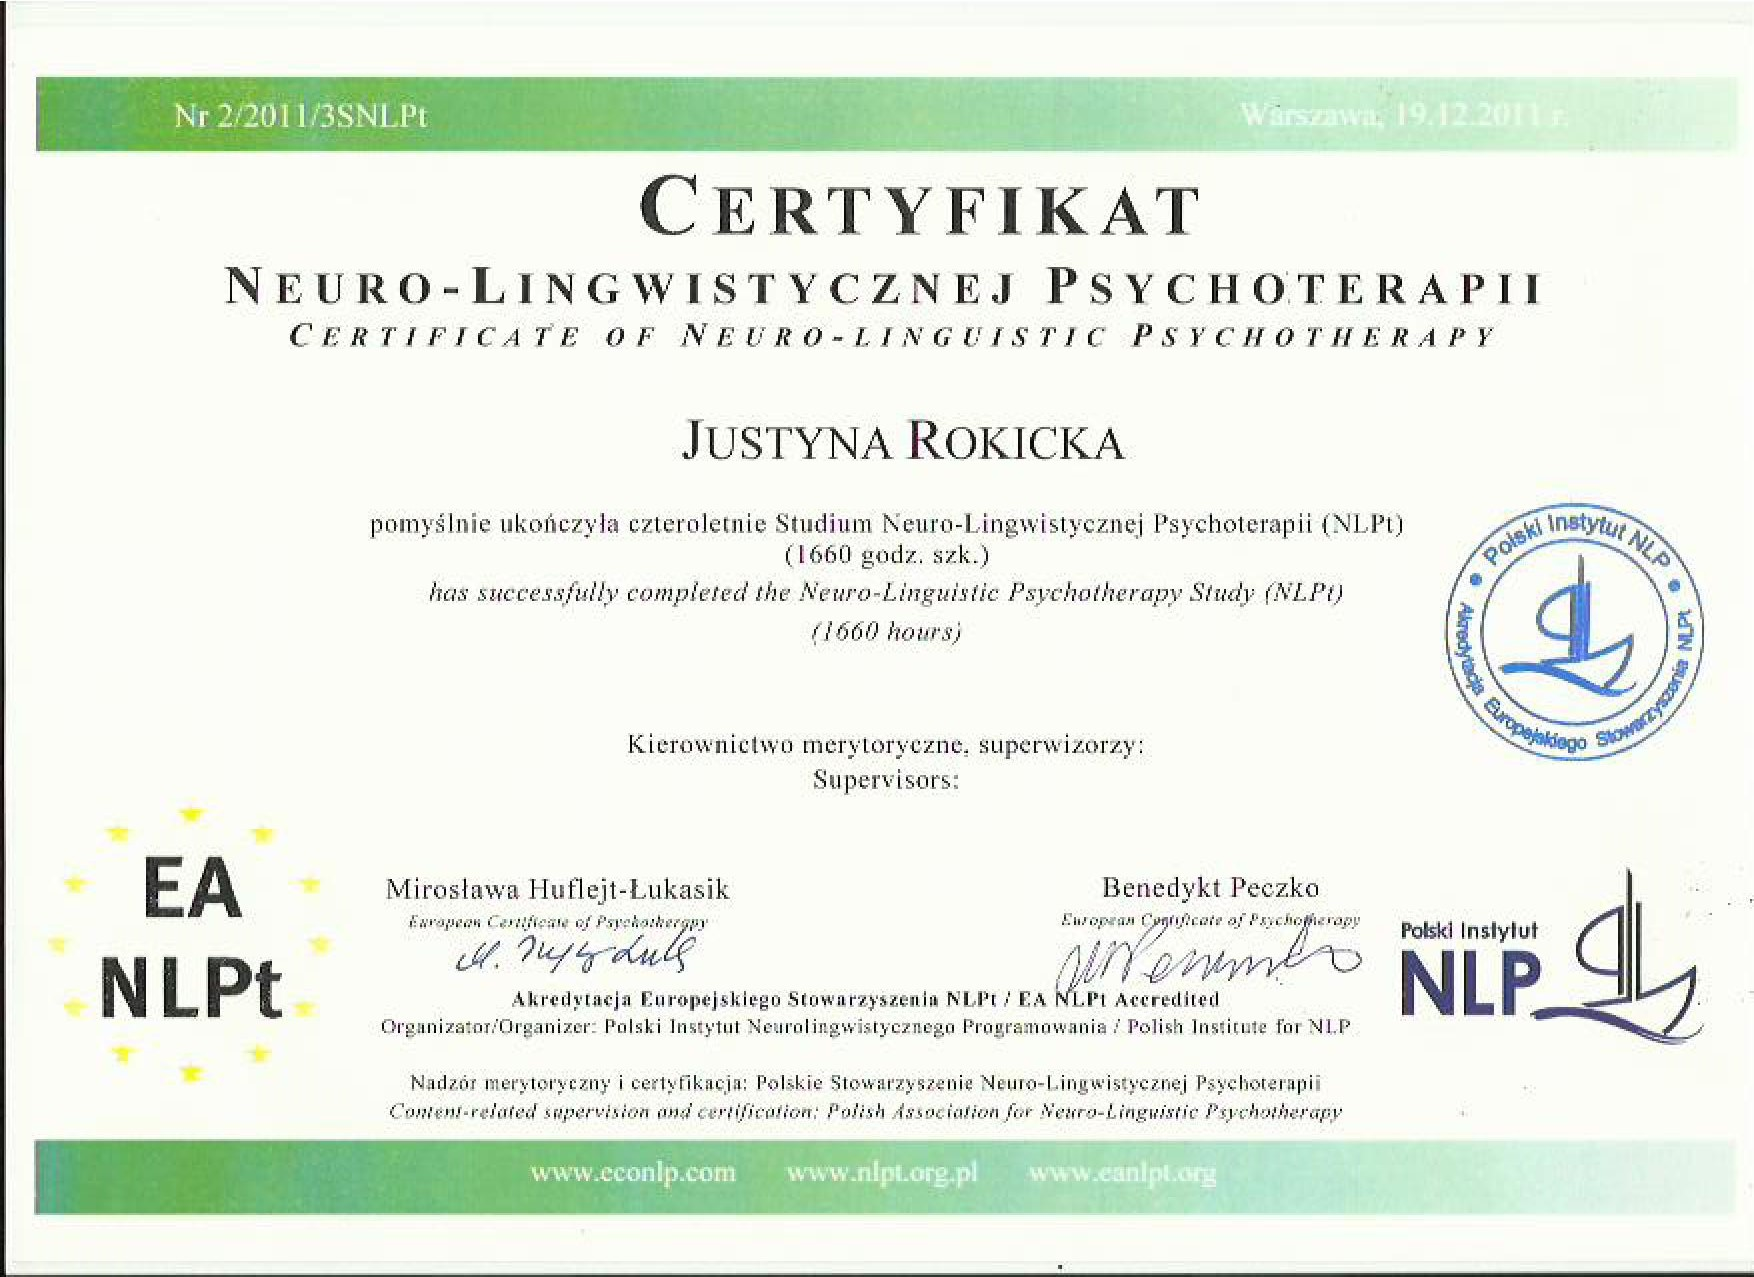 Certificate of Polish Federation of Psychotherapy